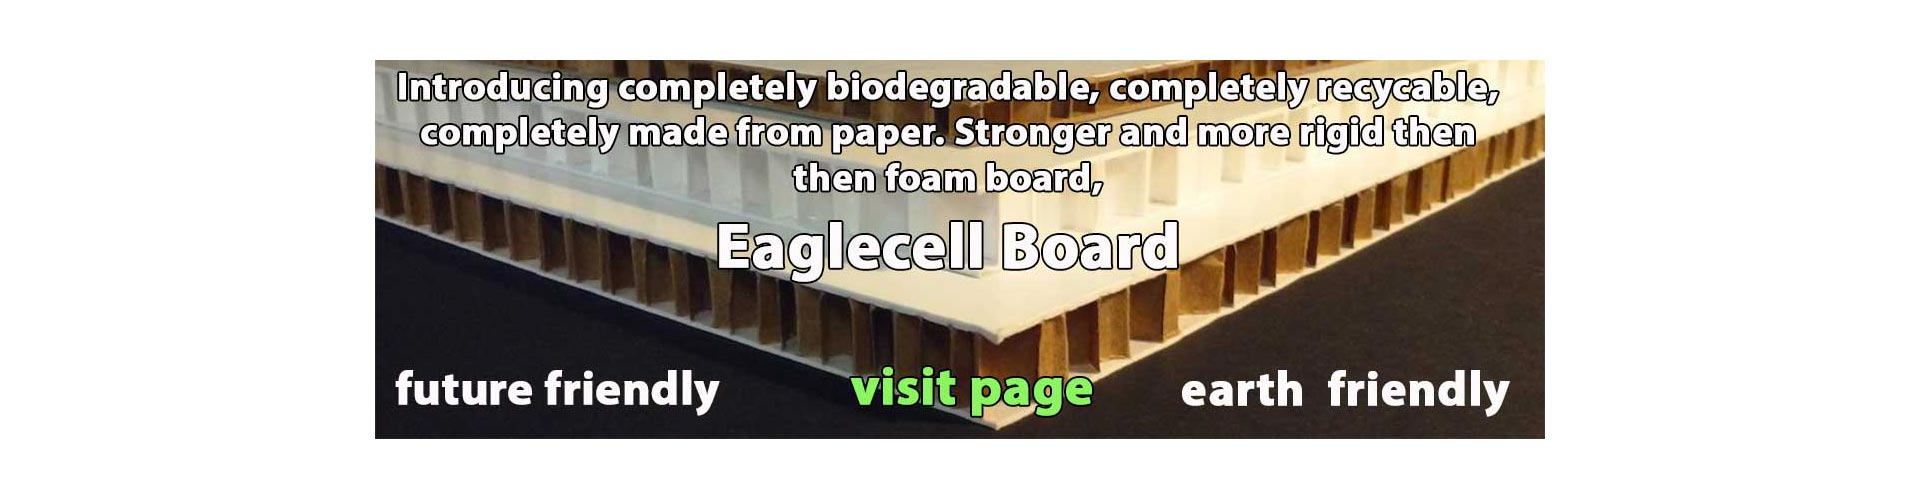 Recyclable  Eaglecell and Falconboard